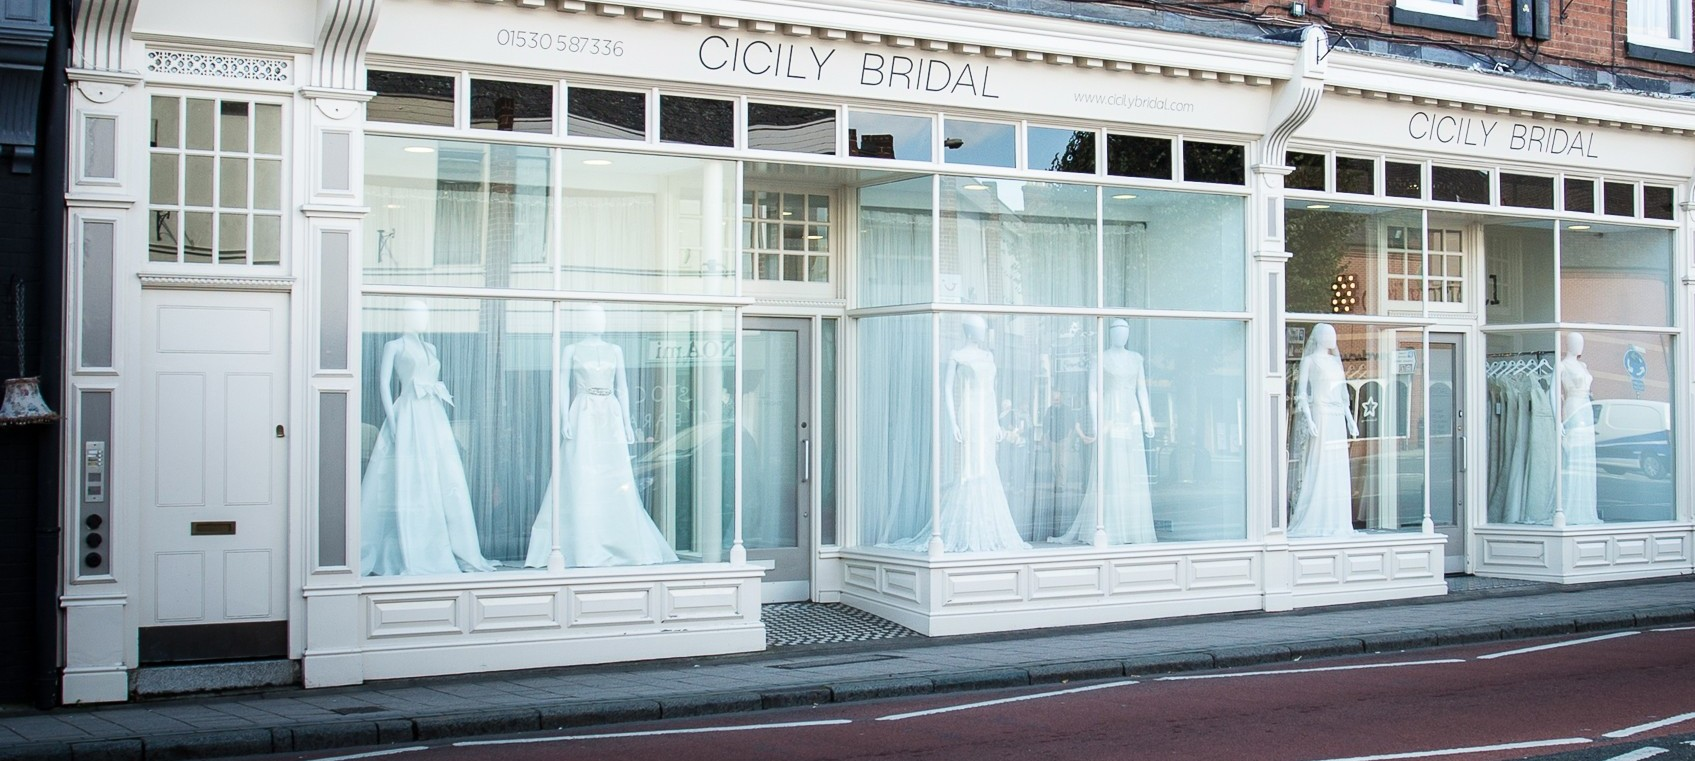 The exciting #restyle at Cicily Bridal - Cicily Bridal Street view